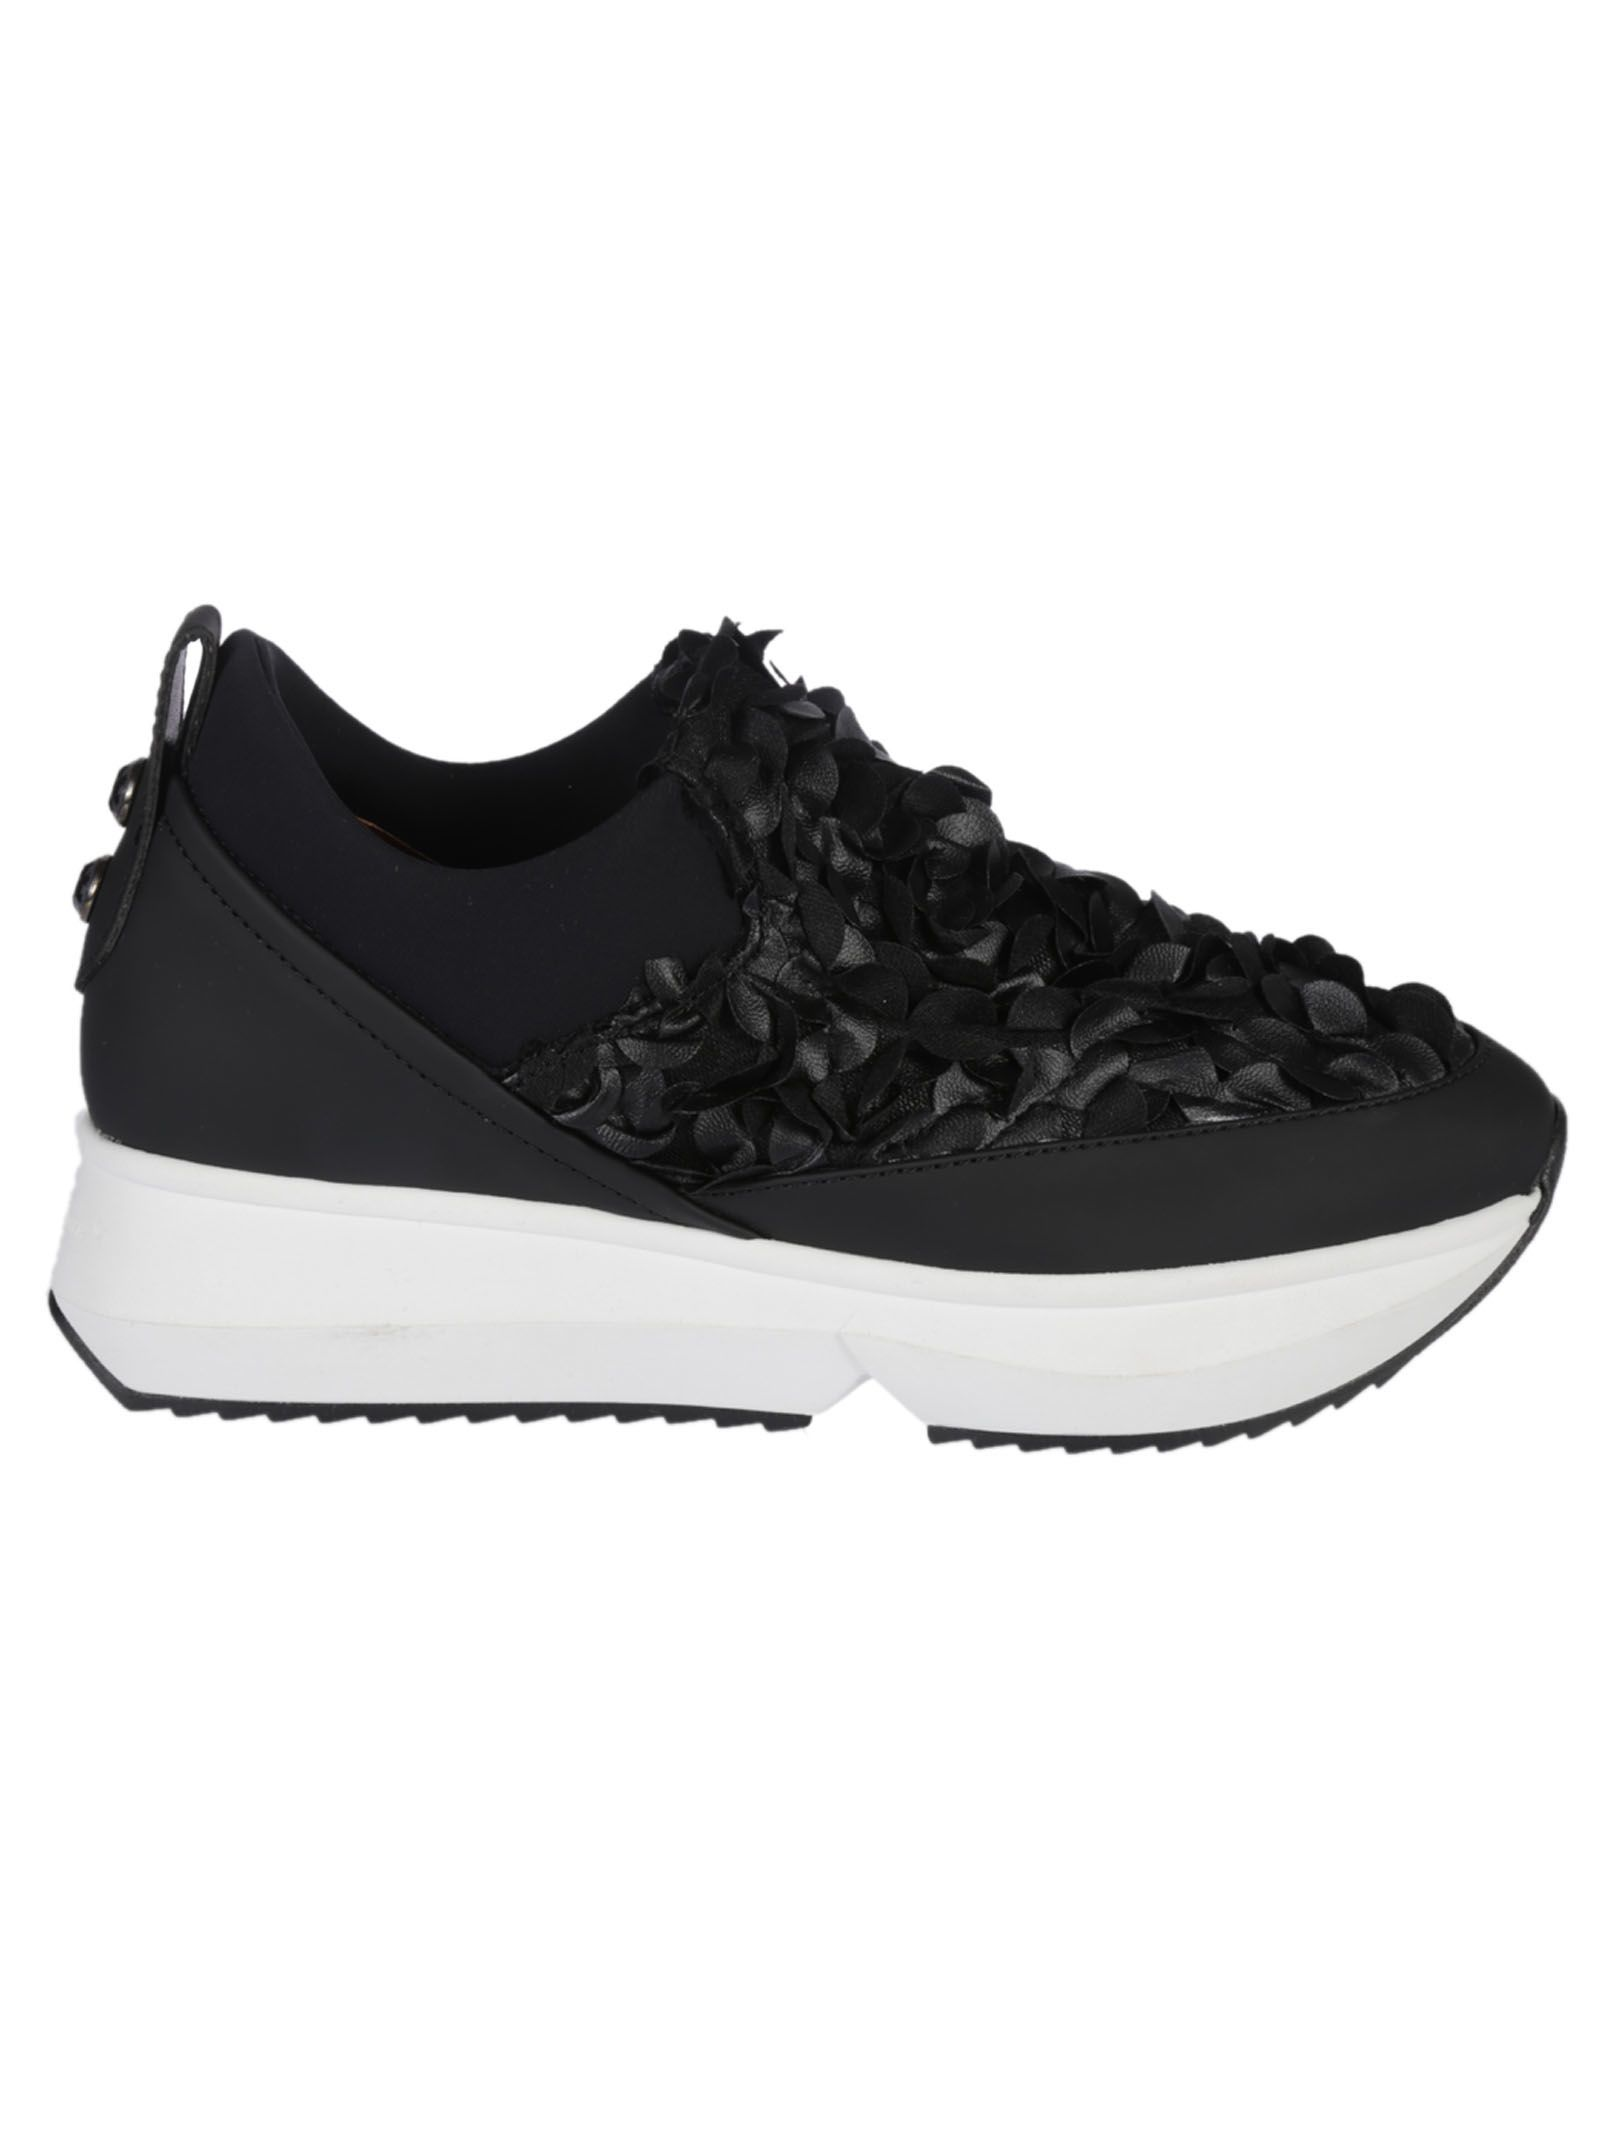 Alexander Smith London Embroidered Flower Sneakers